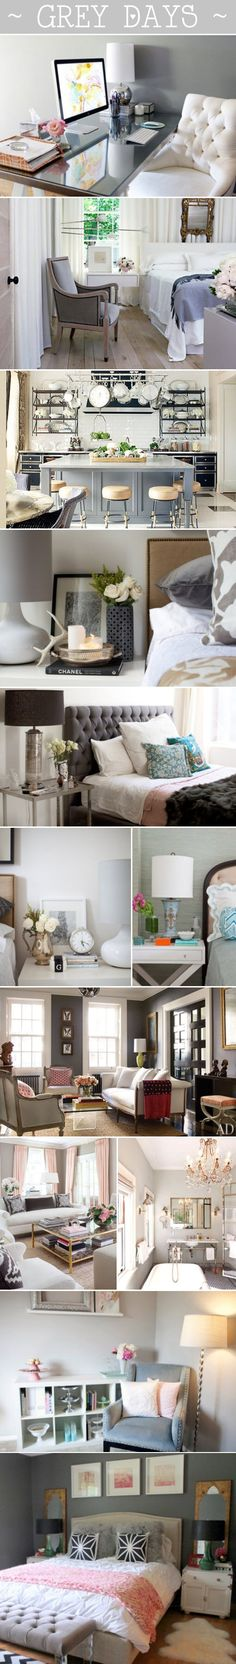 Grey colour palette throughout the home